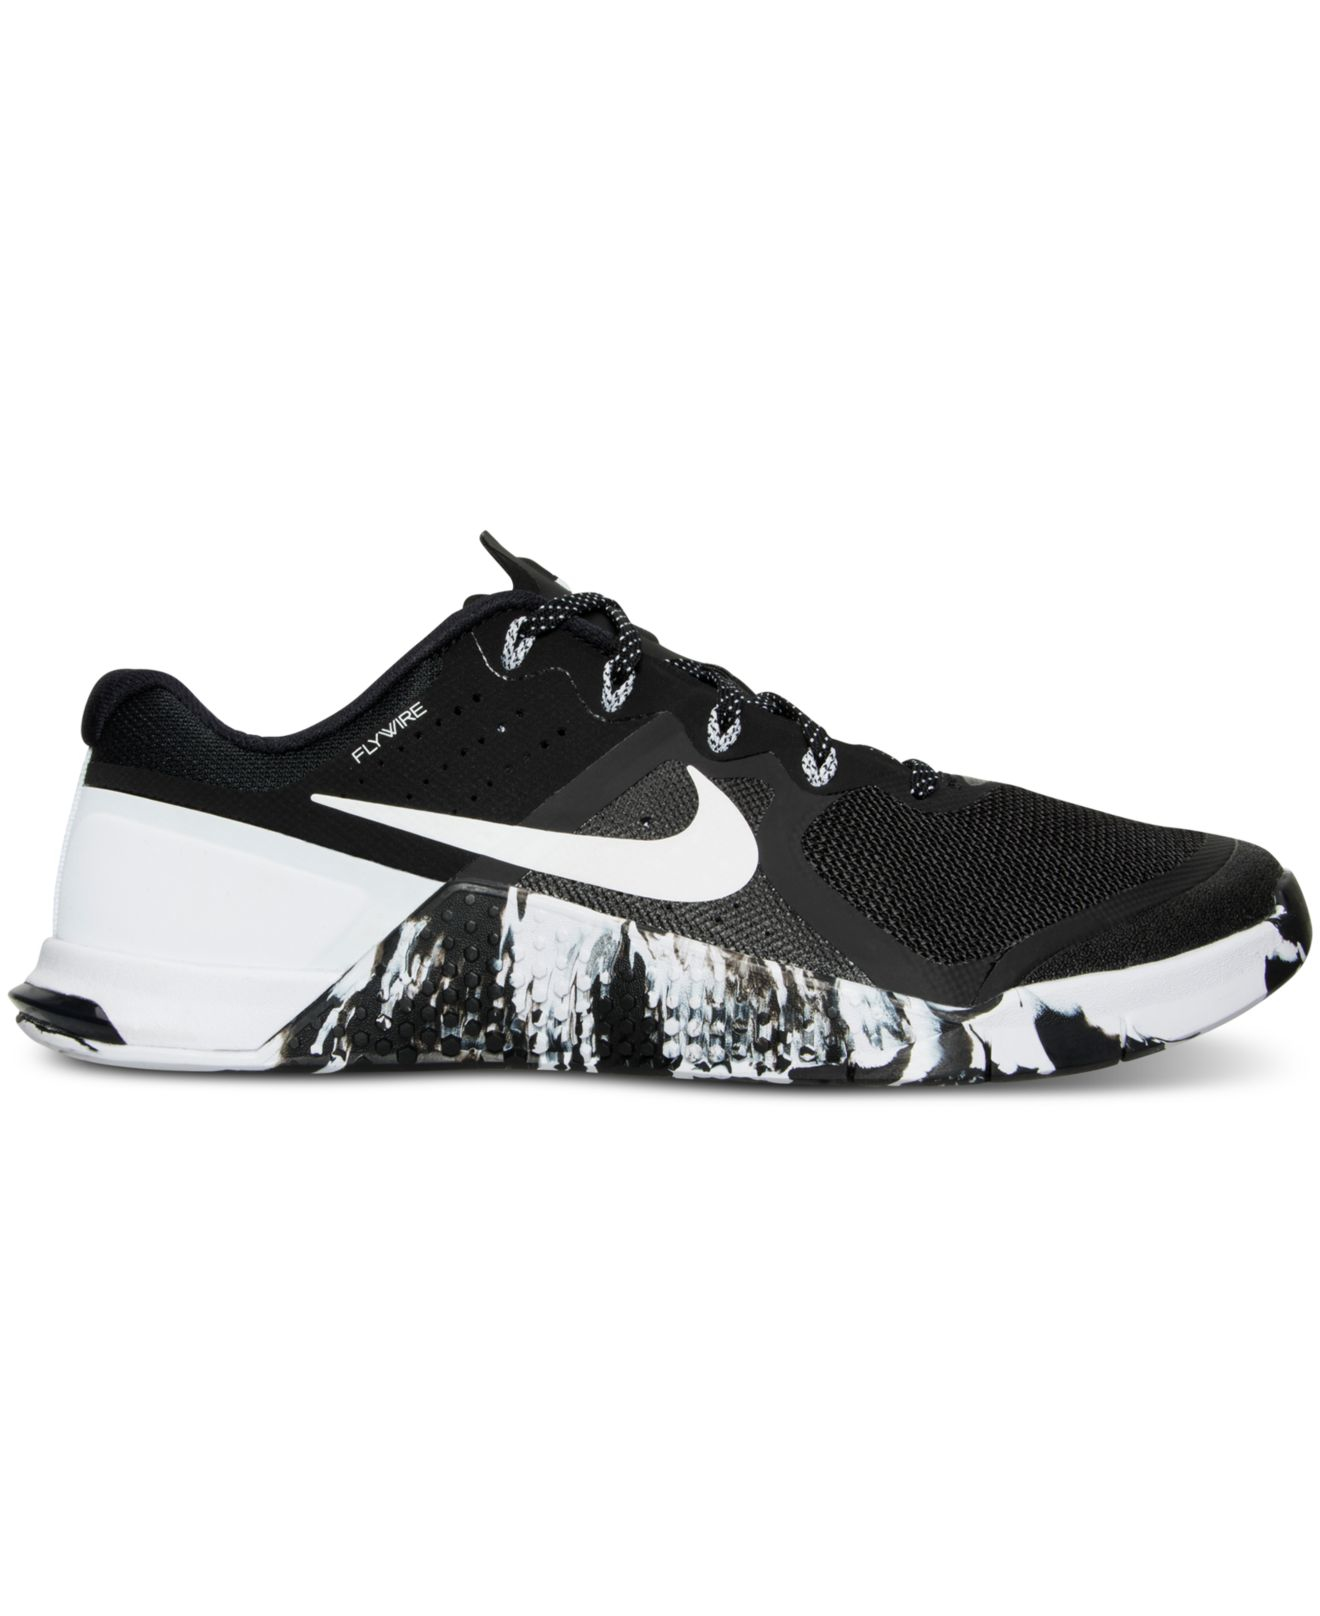 74531ca8e5e43 Nike - Black Men s Metcon 2 Training Sneakers From Finish Line for Men -  Lyst